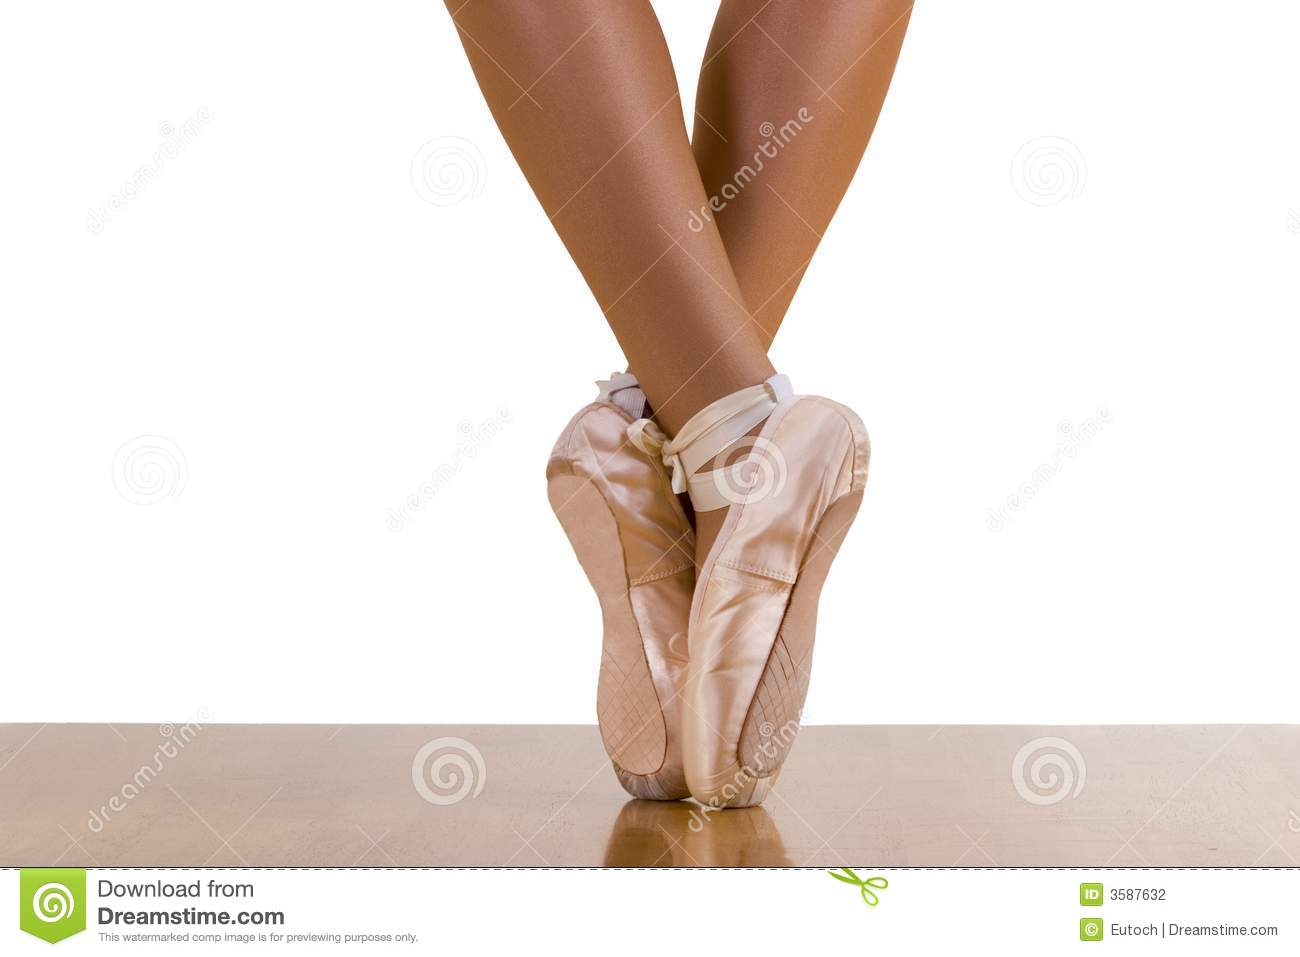 Tiptoe-Ballett-Training